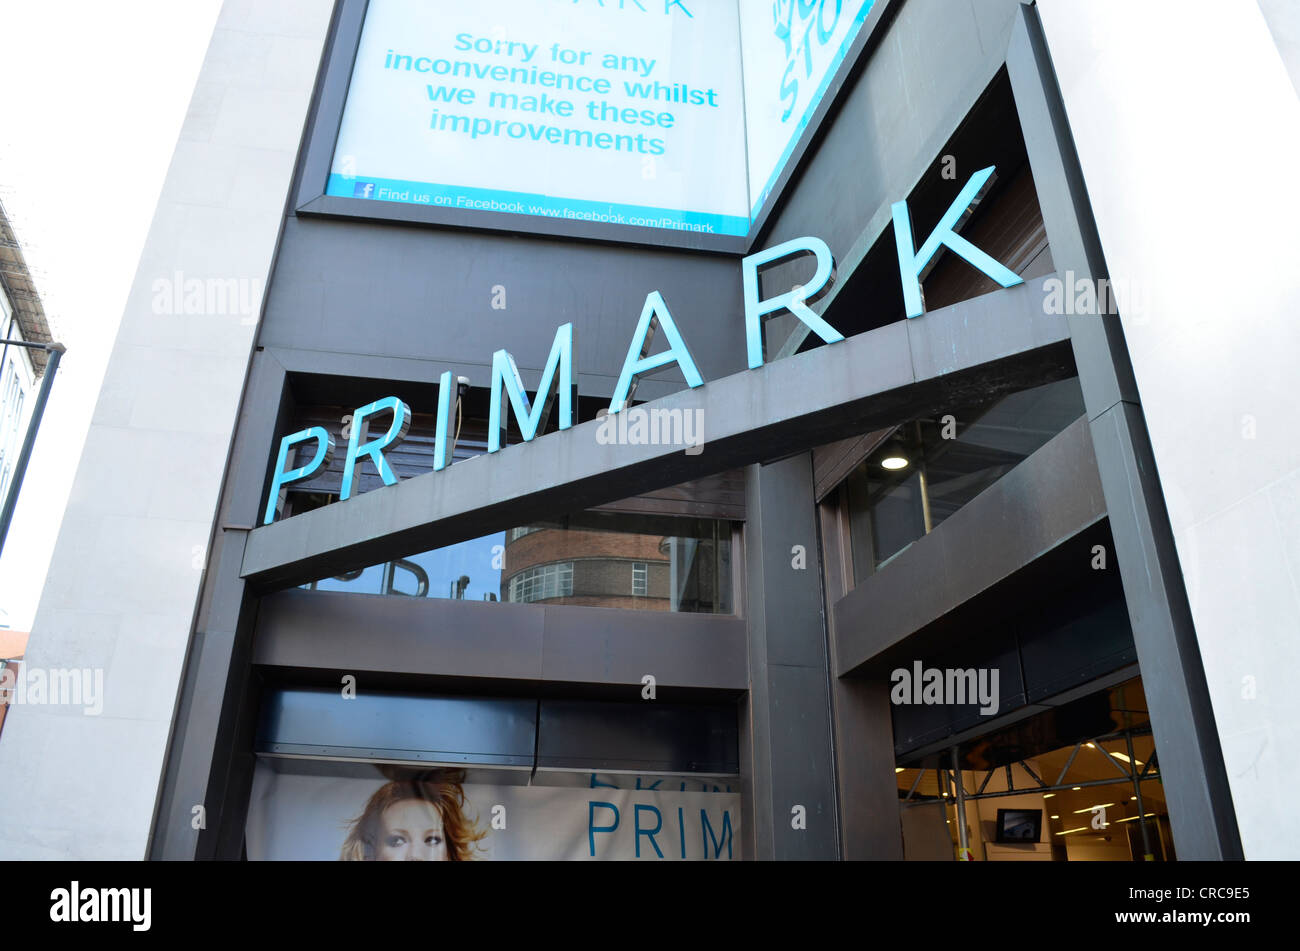 London Primark store sign - Stock Image